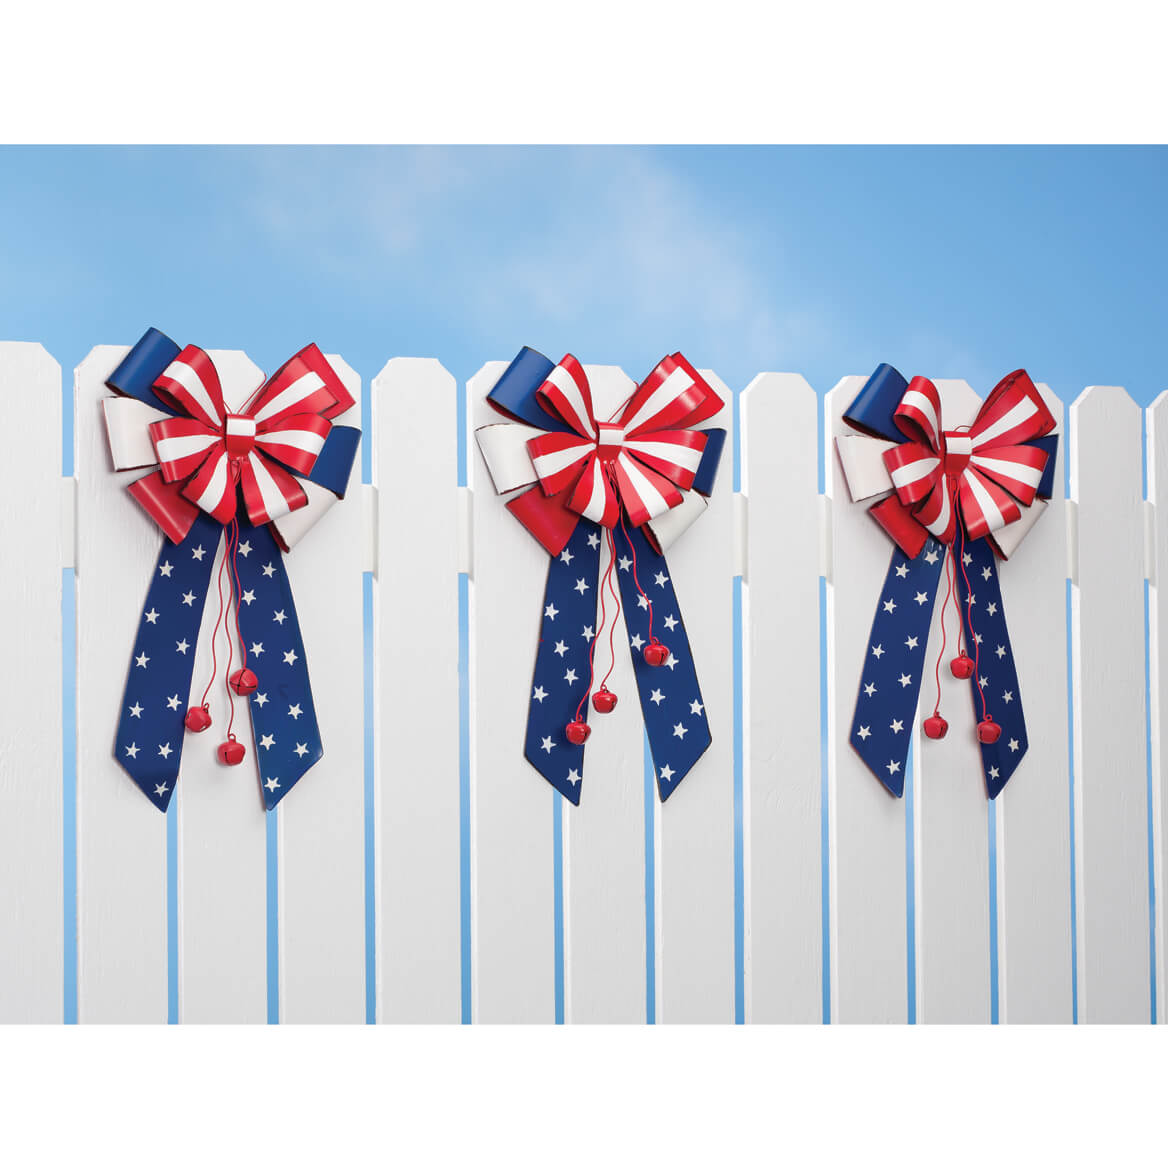 Patriotic Metal Bow Door Hanger by Fox River Creations™-348240